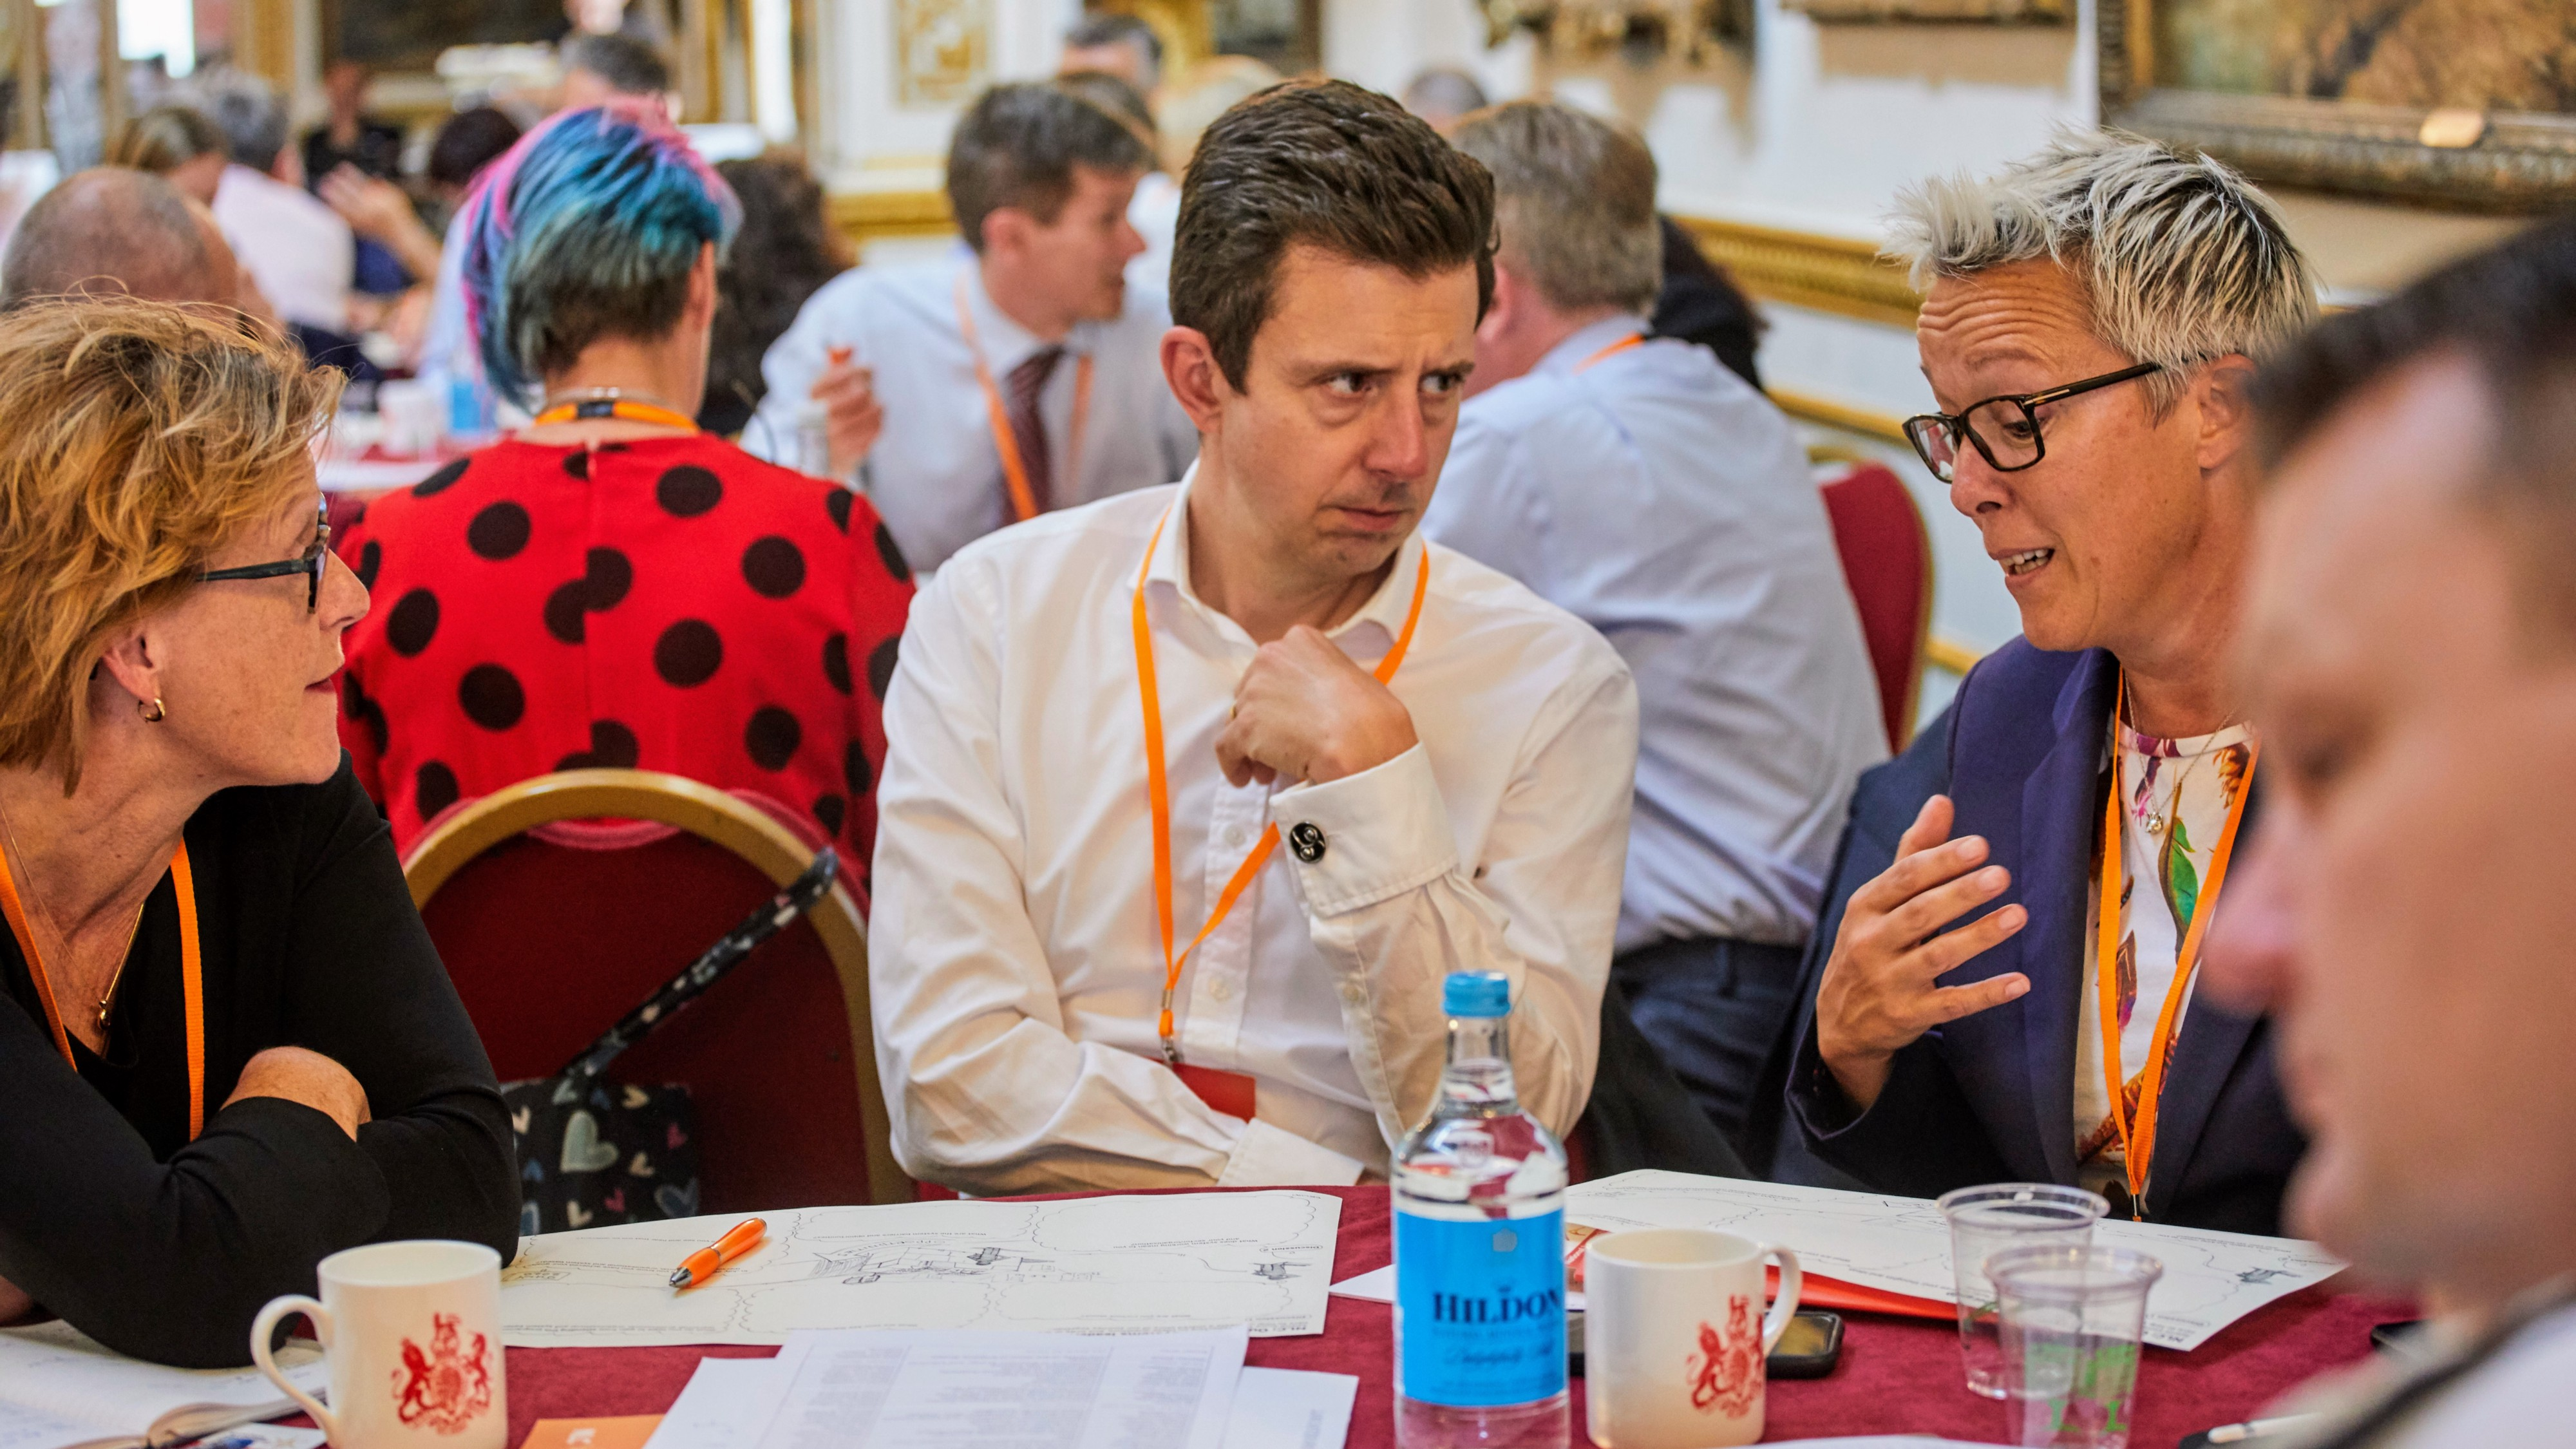 A table of people in discussion at the NLC launch event